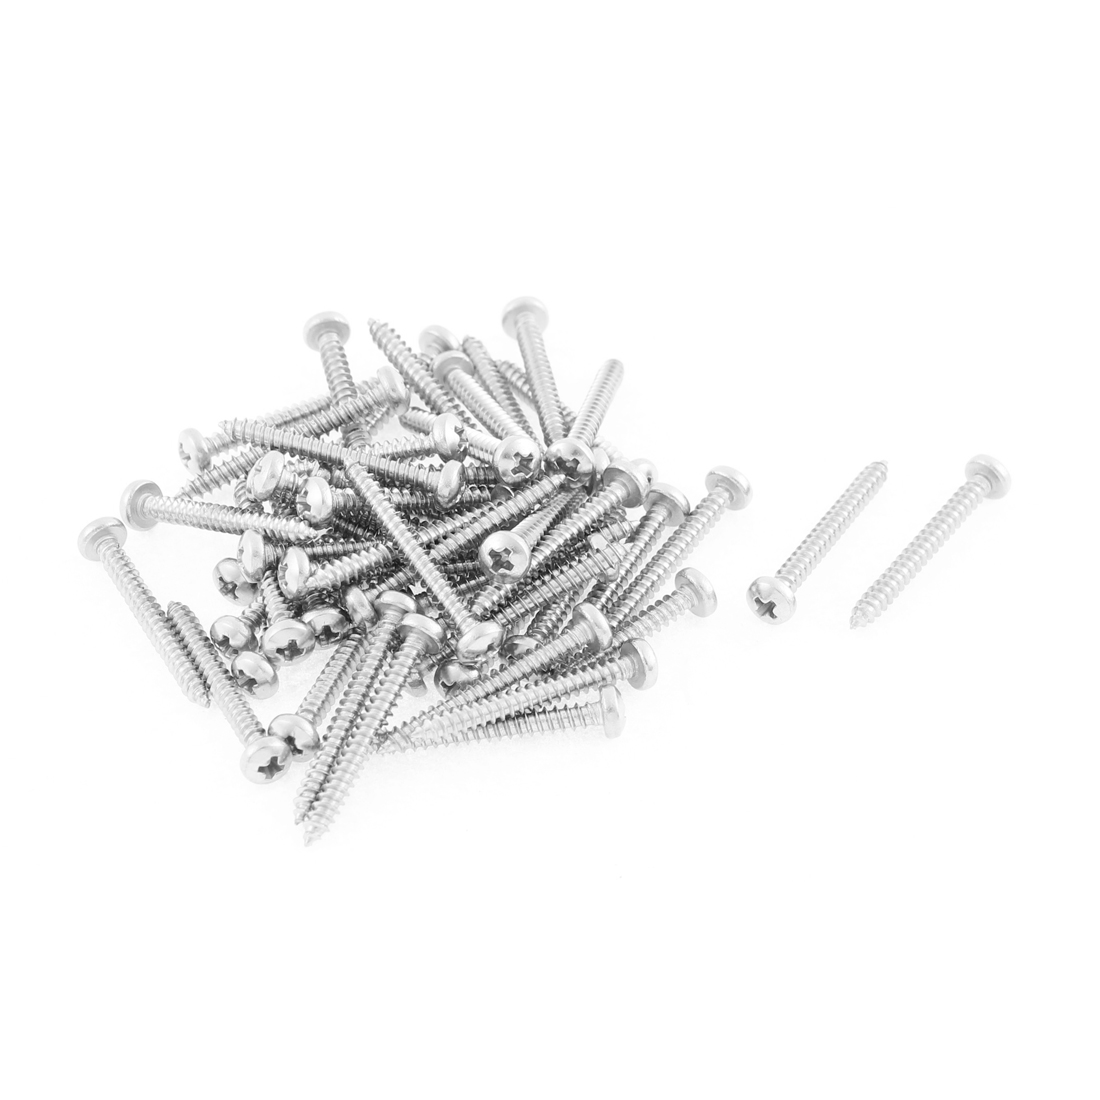 50 Pcs 2.9mmx25mm Stainless Steel Phillips Round Head Sheet Self Tapping Screws